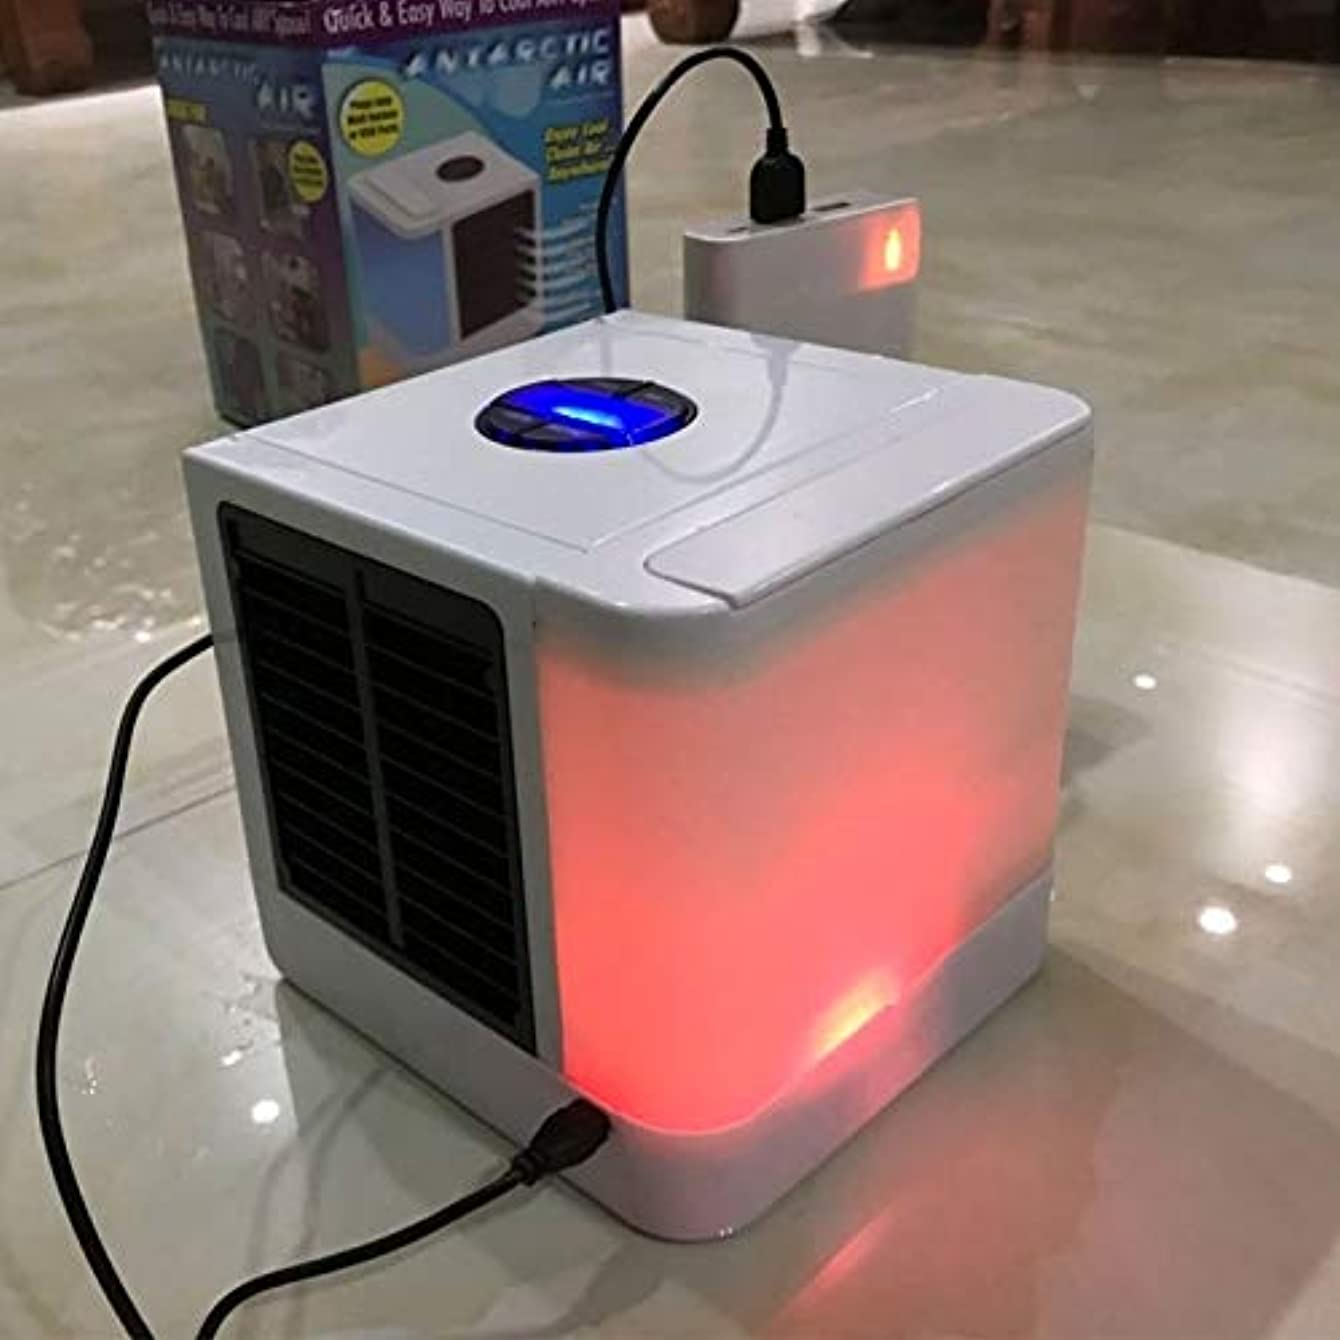 Max one Comlife Mini USB Air Conditioner Fan 3 in 1 Air Personal Space Cooler Mini Air Purifier Humidifier with 7 Colors LED Lights Air Circulator Fan